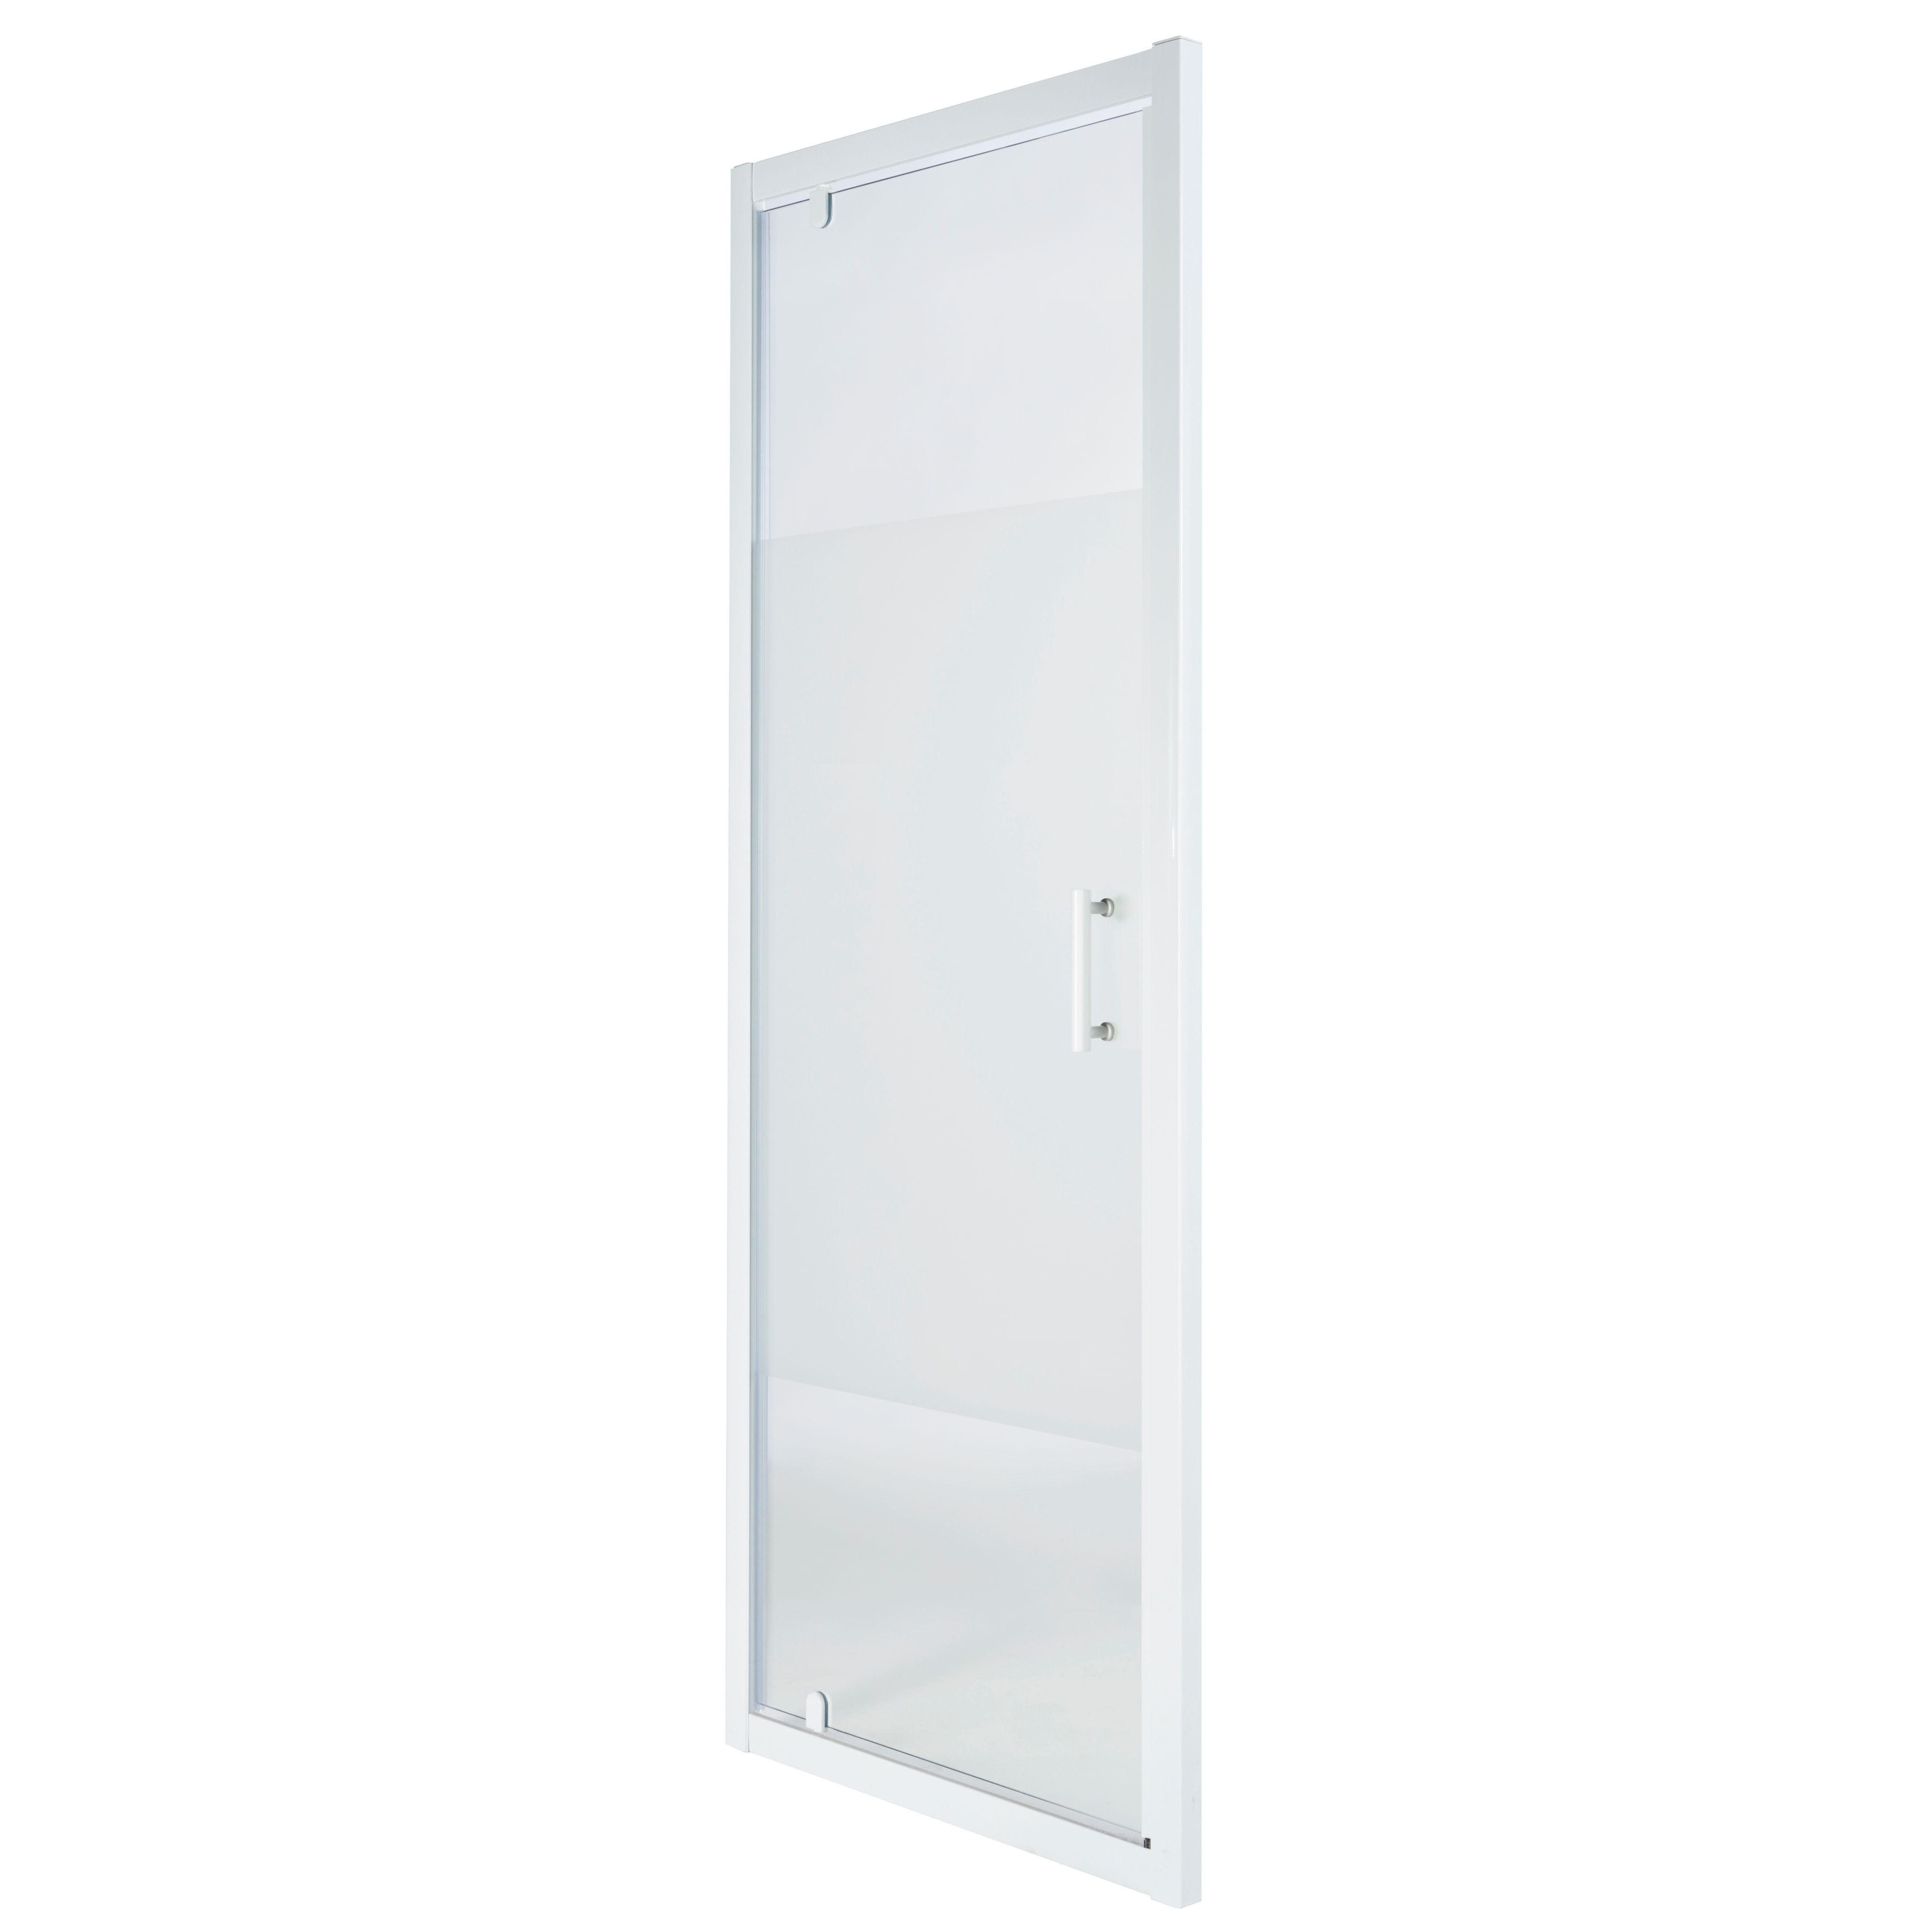 Cooke Lewis Onega Shower Door With Pivot Door Frosted Effect Glass W 900mm Departments Diy At B Q